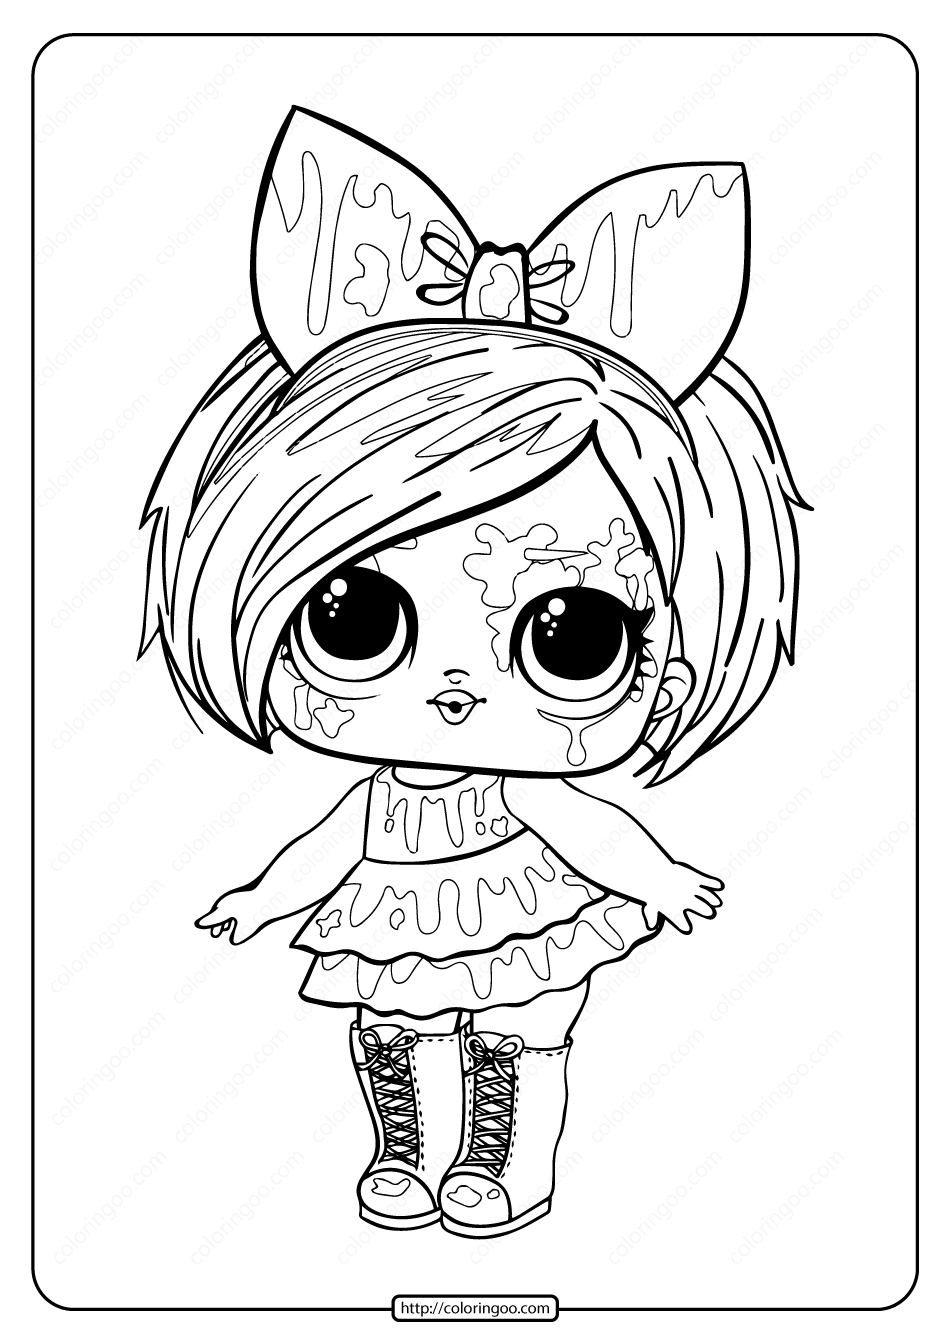 LOL Surprise Hairgoals Splatters Coloring Page